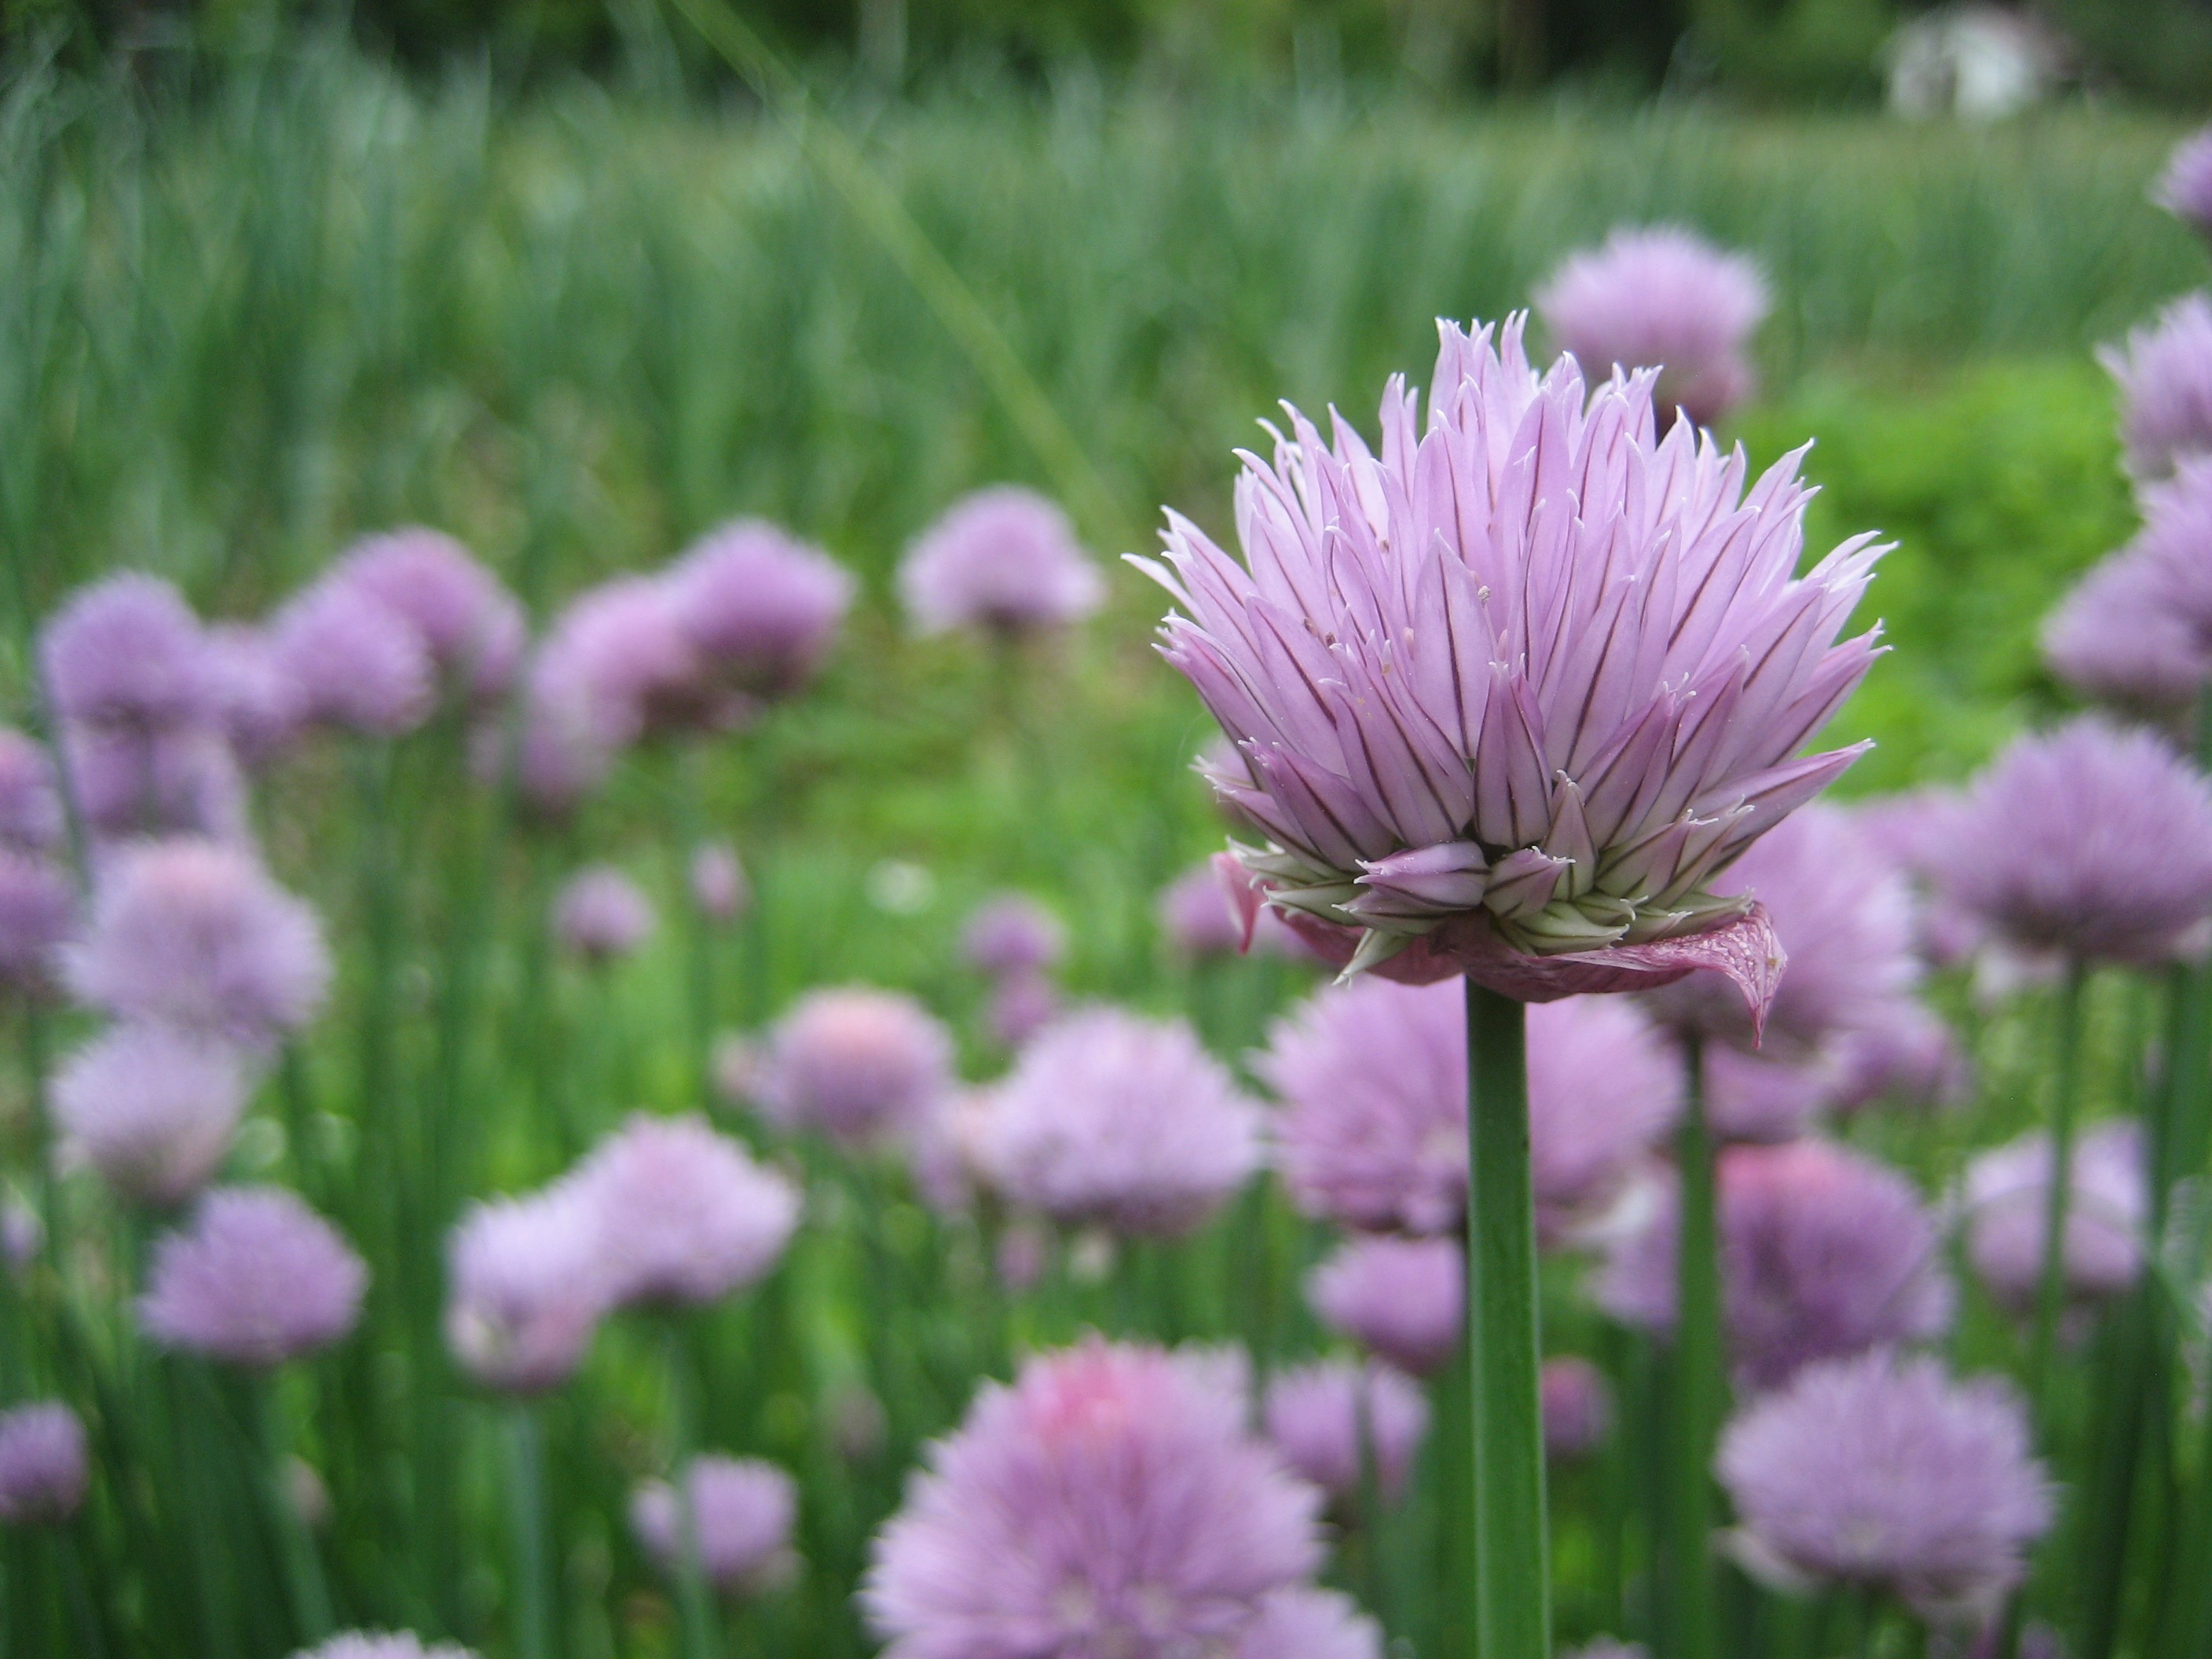 Chives Allium tuberosum Hudson Valley Seed Library